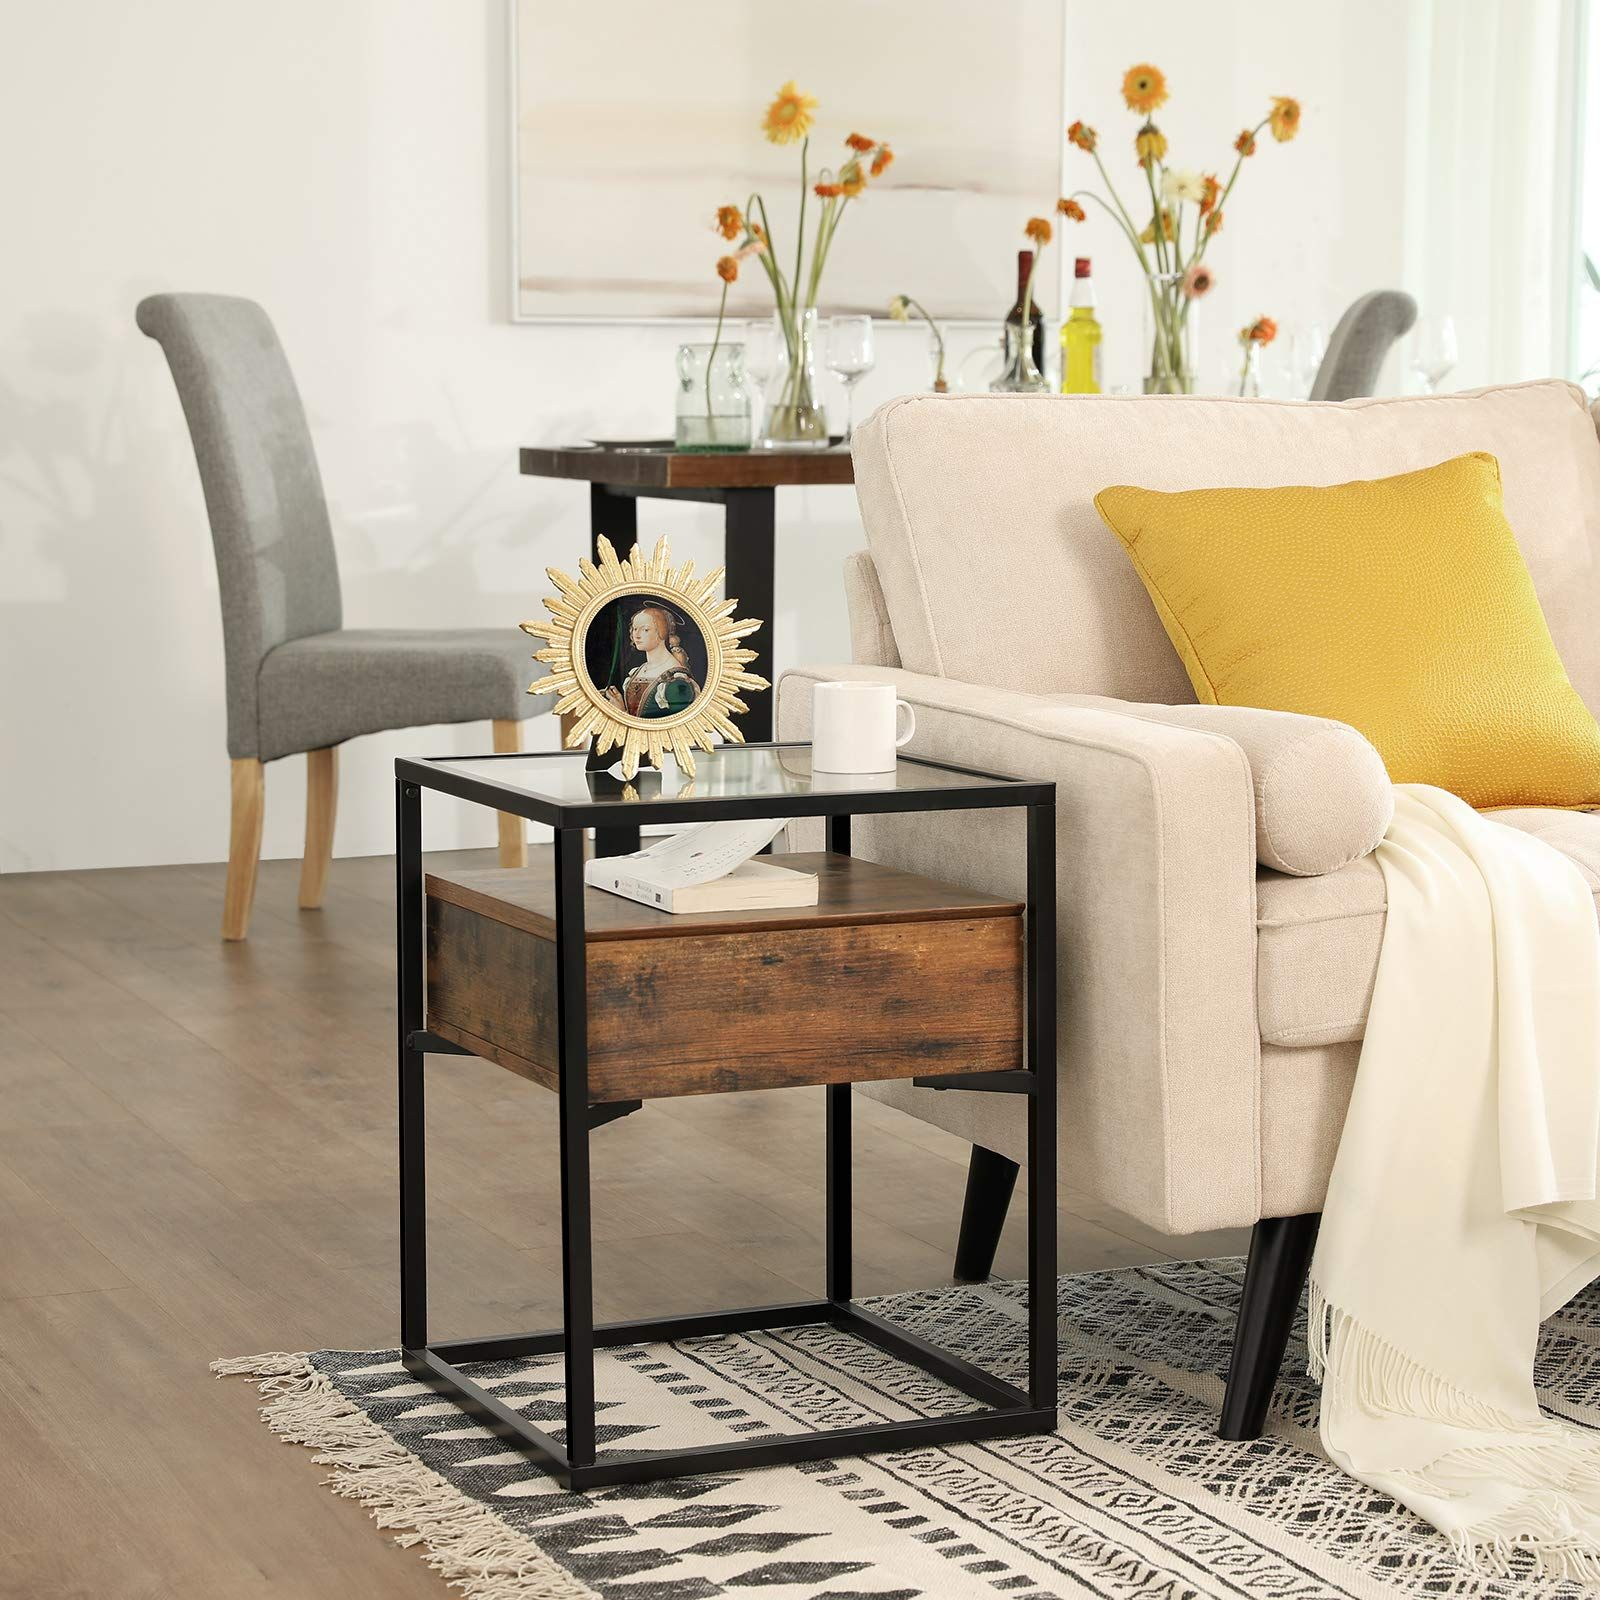 Vasagle Industrial Nightstand Decoration Ulet04bx In 2020 Industrial Side Table Furniture Glass End Tables